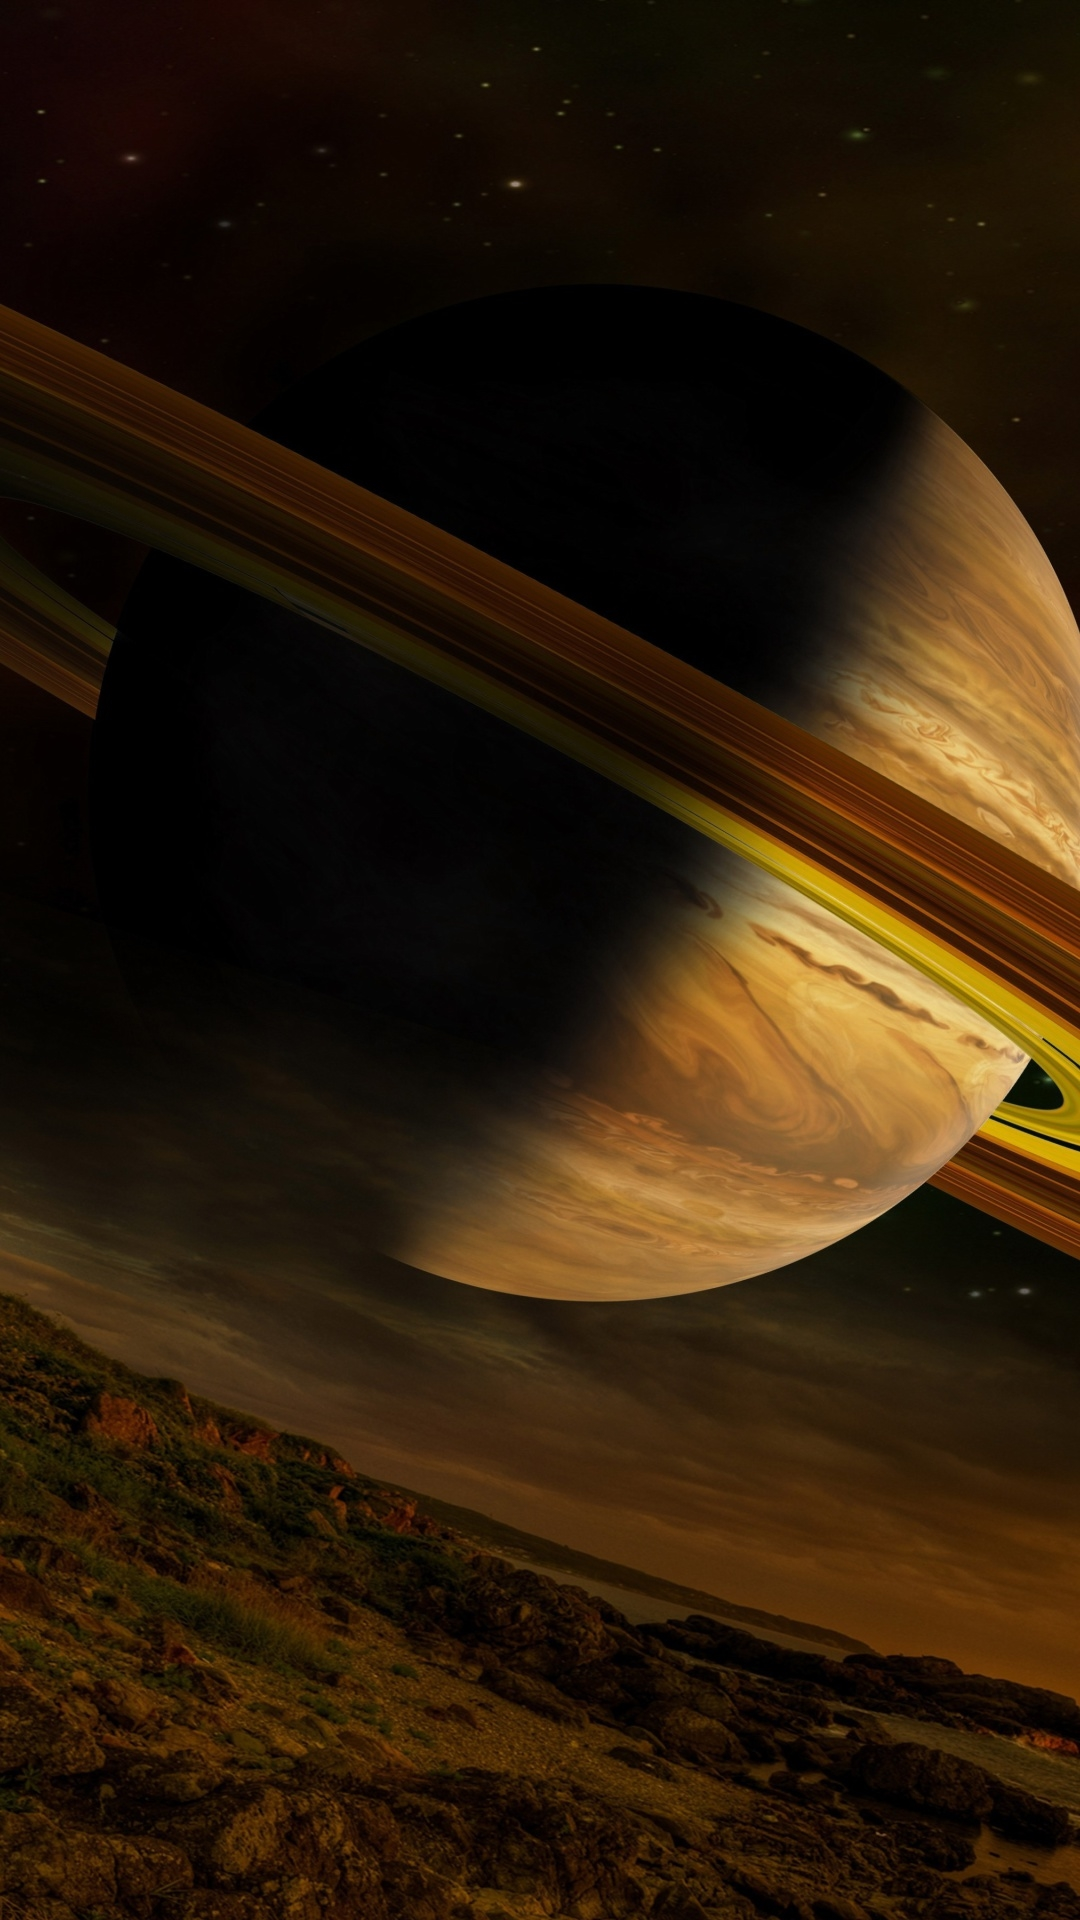 Saturn free wallpaper for android